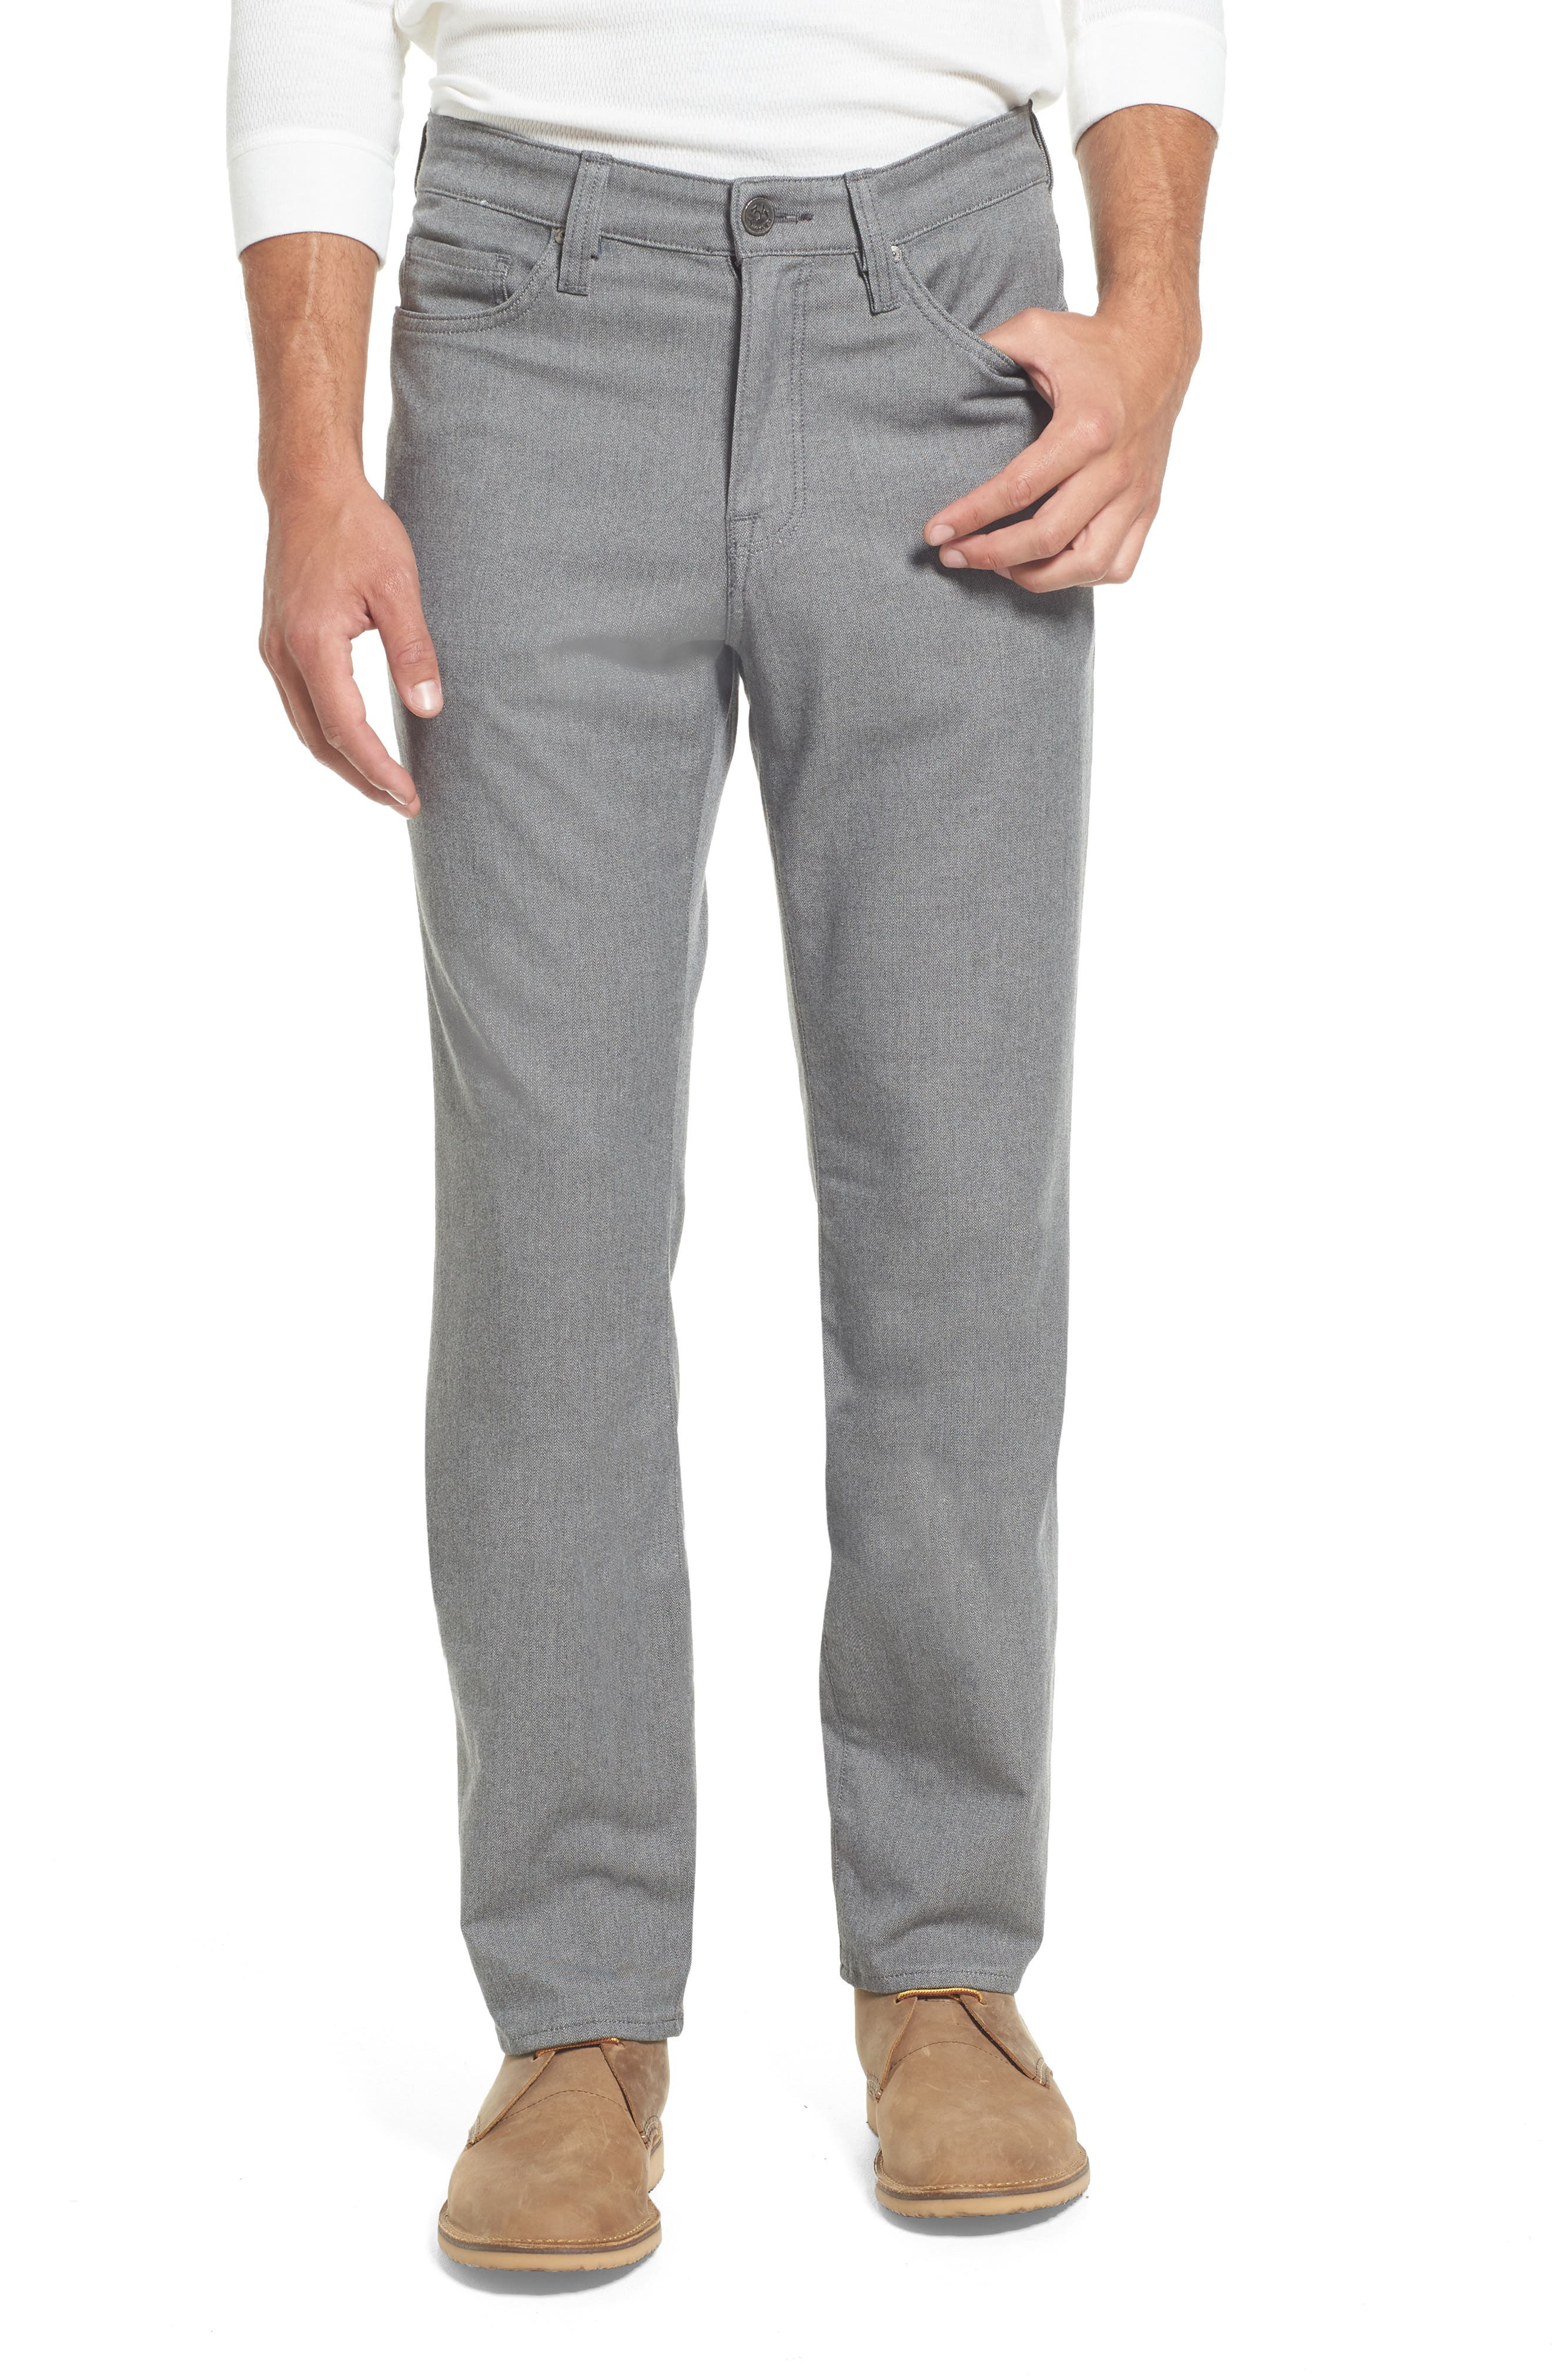 34 Heritage Charisma Relaxed Fit Jeans (Grey Winter Twill)